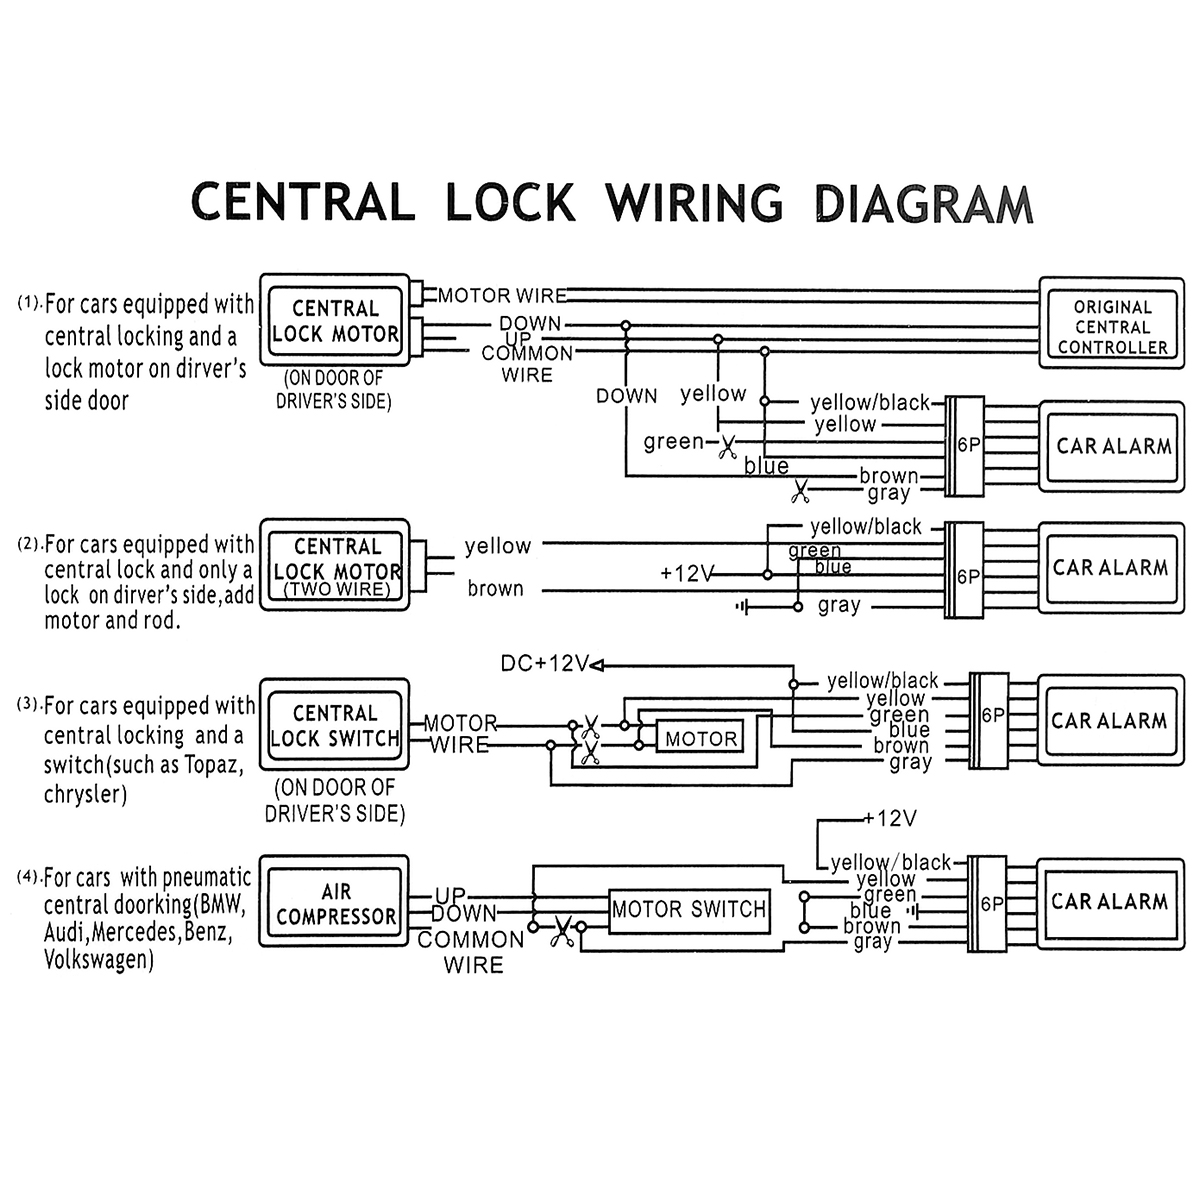 02D0AC Car Alarm Central Locking Wiring Diagram | Wiring ResourcesWiring Resources